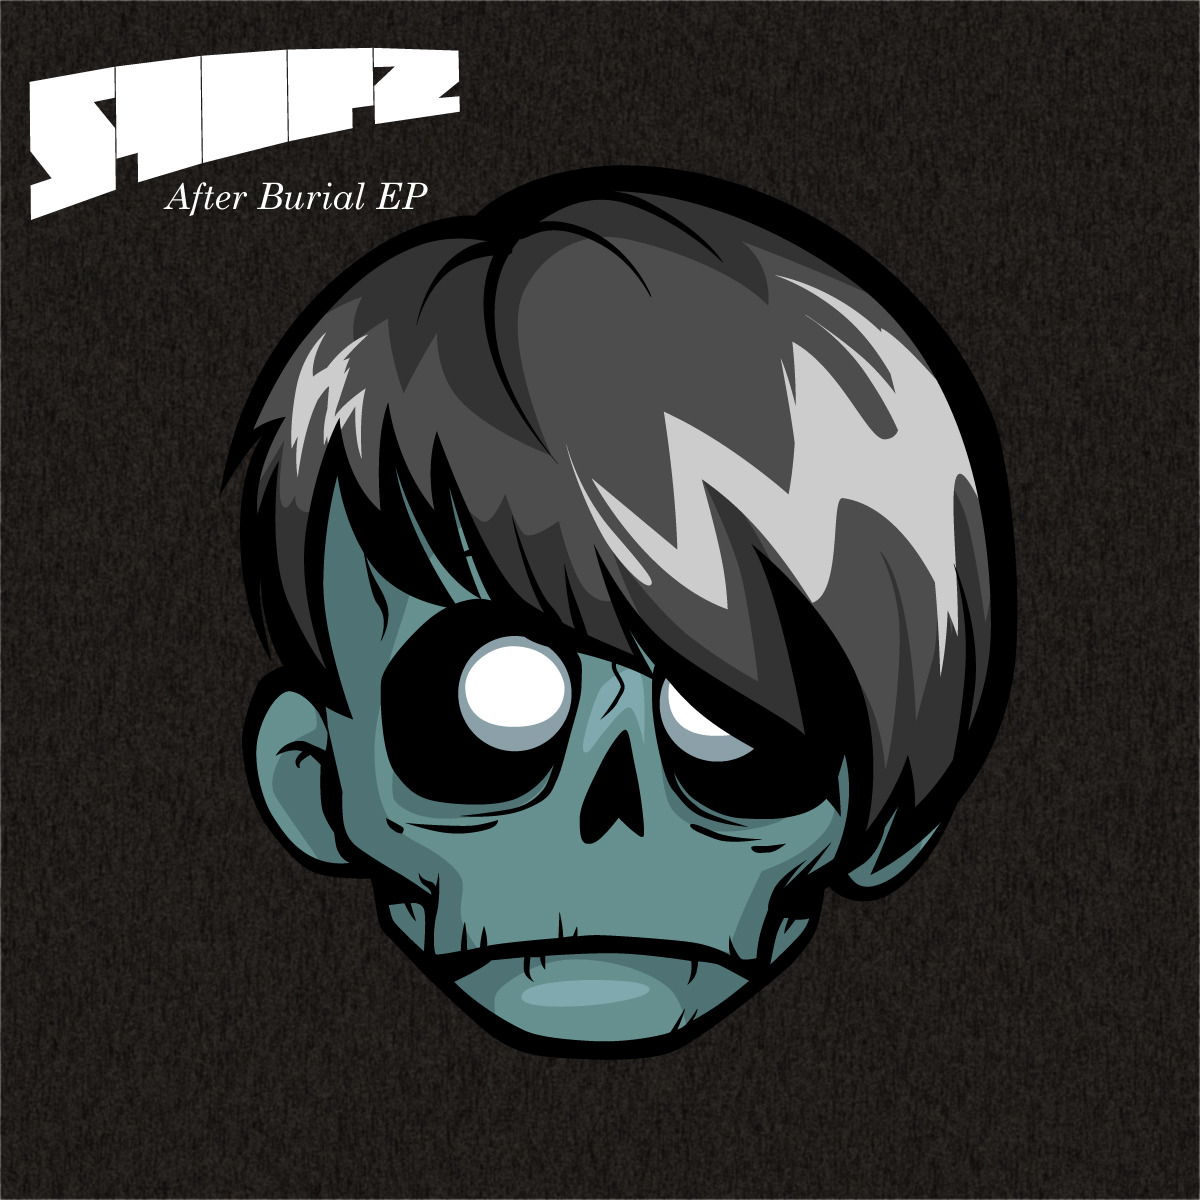 12/10/12 storz - After Burial EP http://www.otherman-records.com/releases/OTMN040